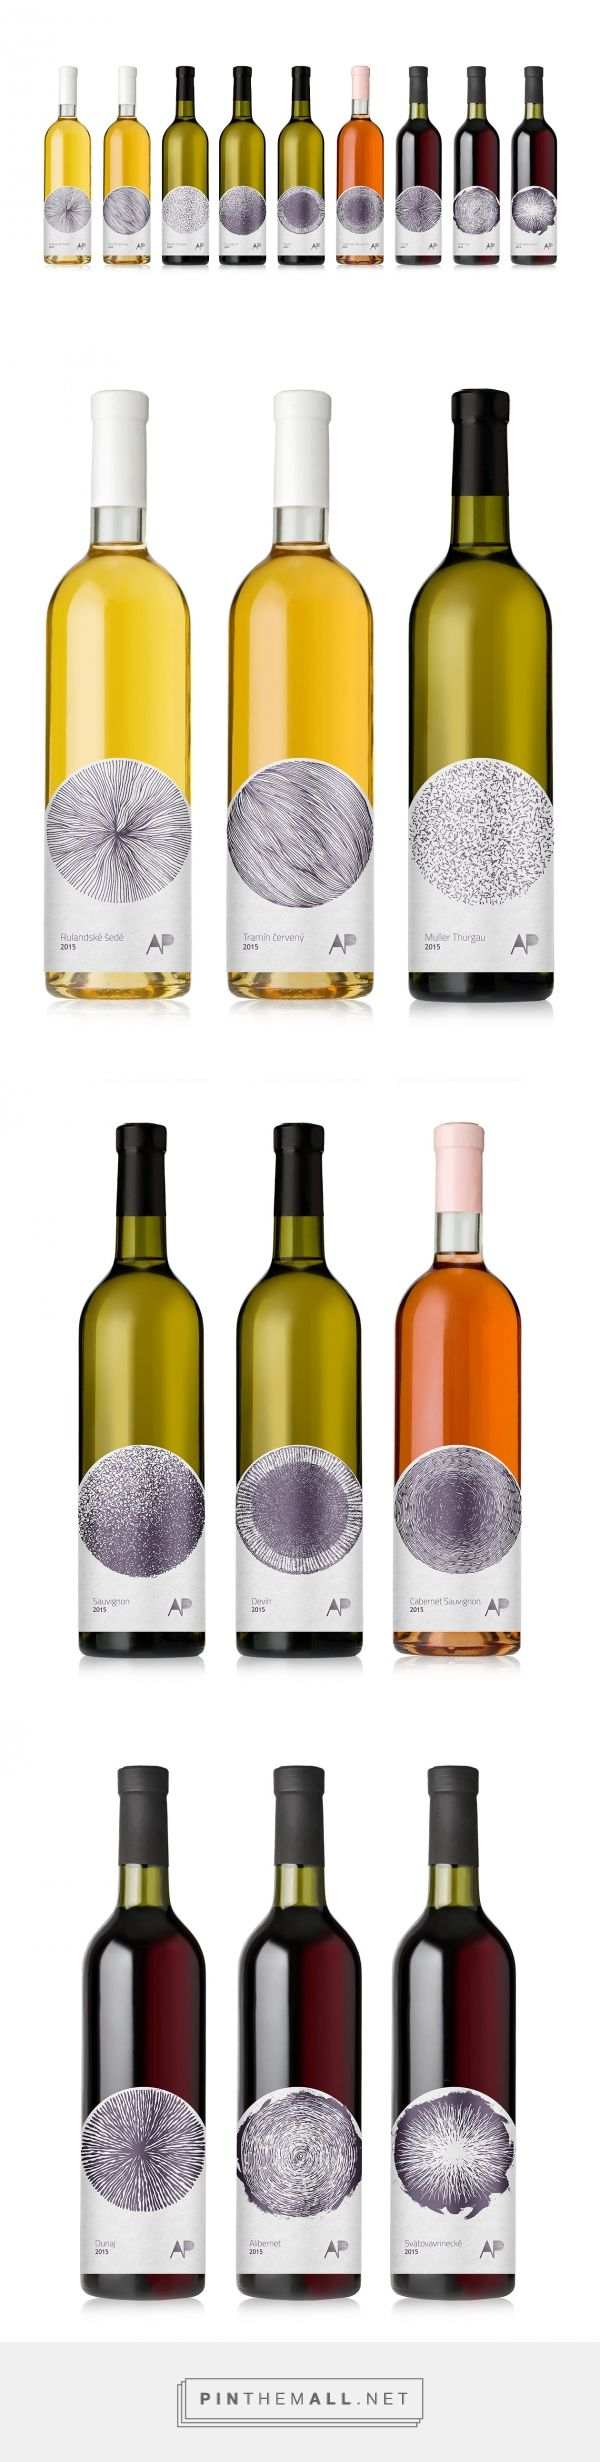 Aperun Wines packaging by MAISON D'IDÉE curated by Packaging Diva PD. Bringing back traditional approach with the use of hand drawn illustration, in combination with lowered position of the label. The shape of the label serves as an accent to the spherical illustrations.